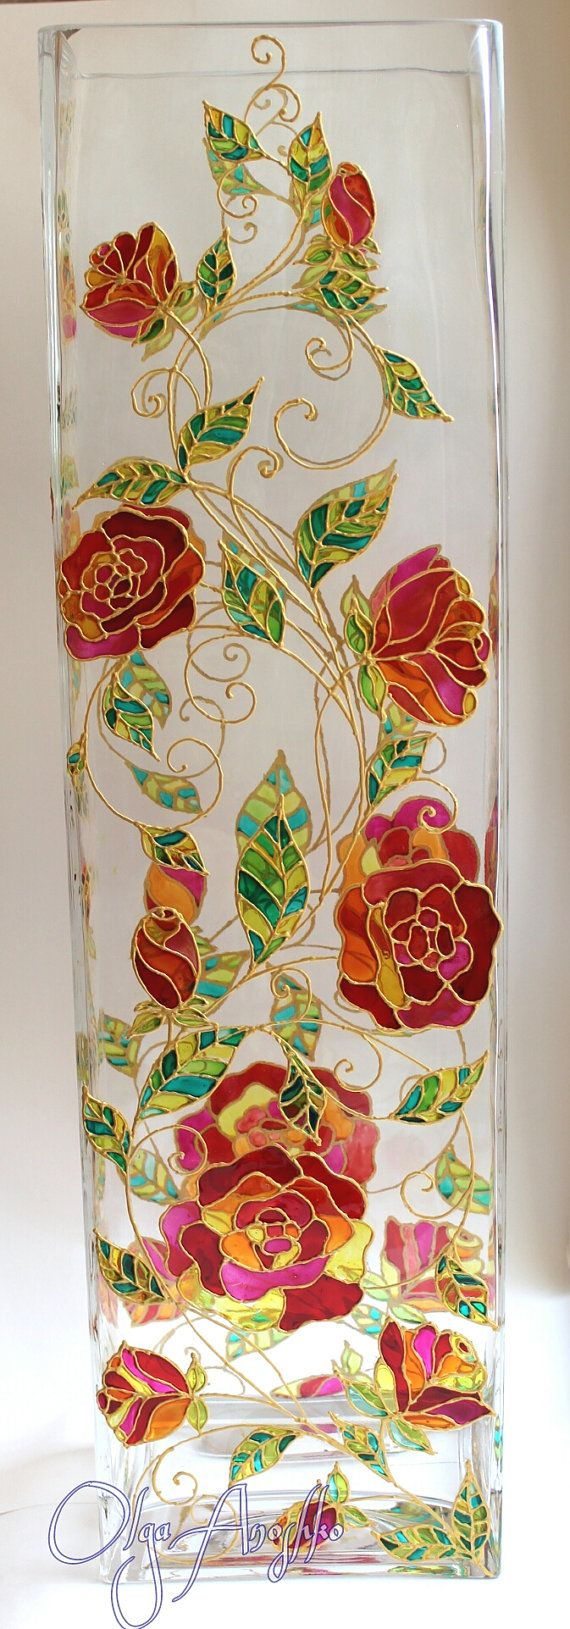 Red Flowers Vase Stained Glass Modern Vase от RomanticArtGlass